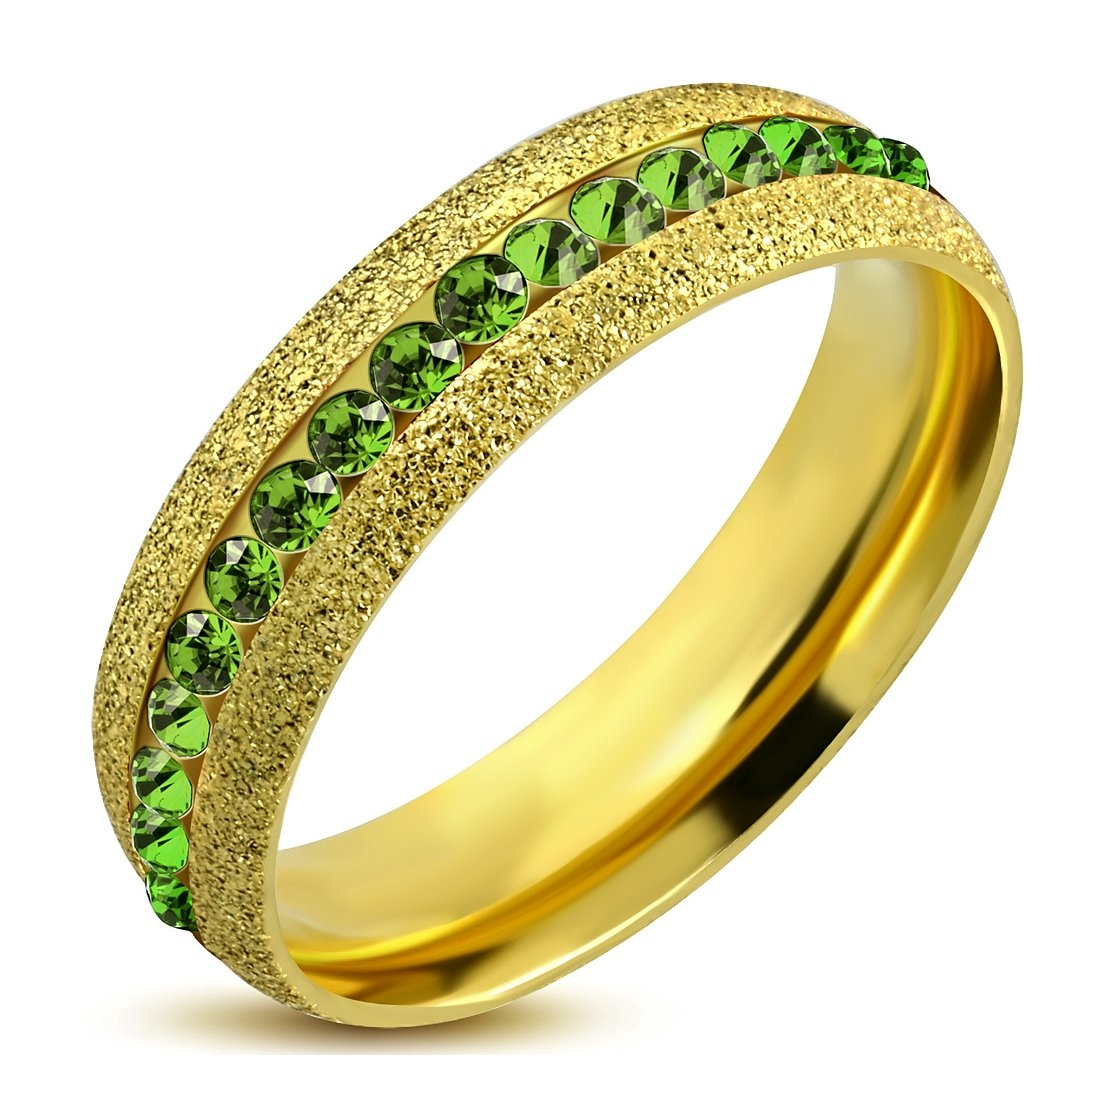 Gold Color Plated Stainless Steel Sandblasted Channel-Set Eternity Comfort Fit Band Ring with Peridot CZ